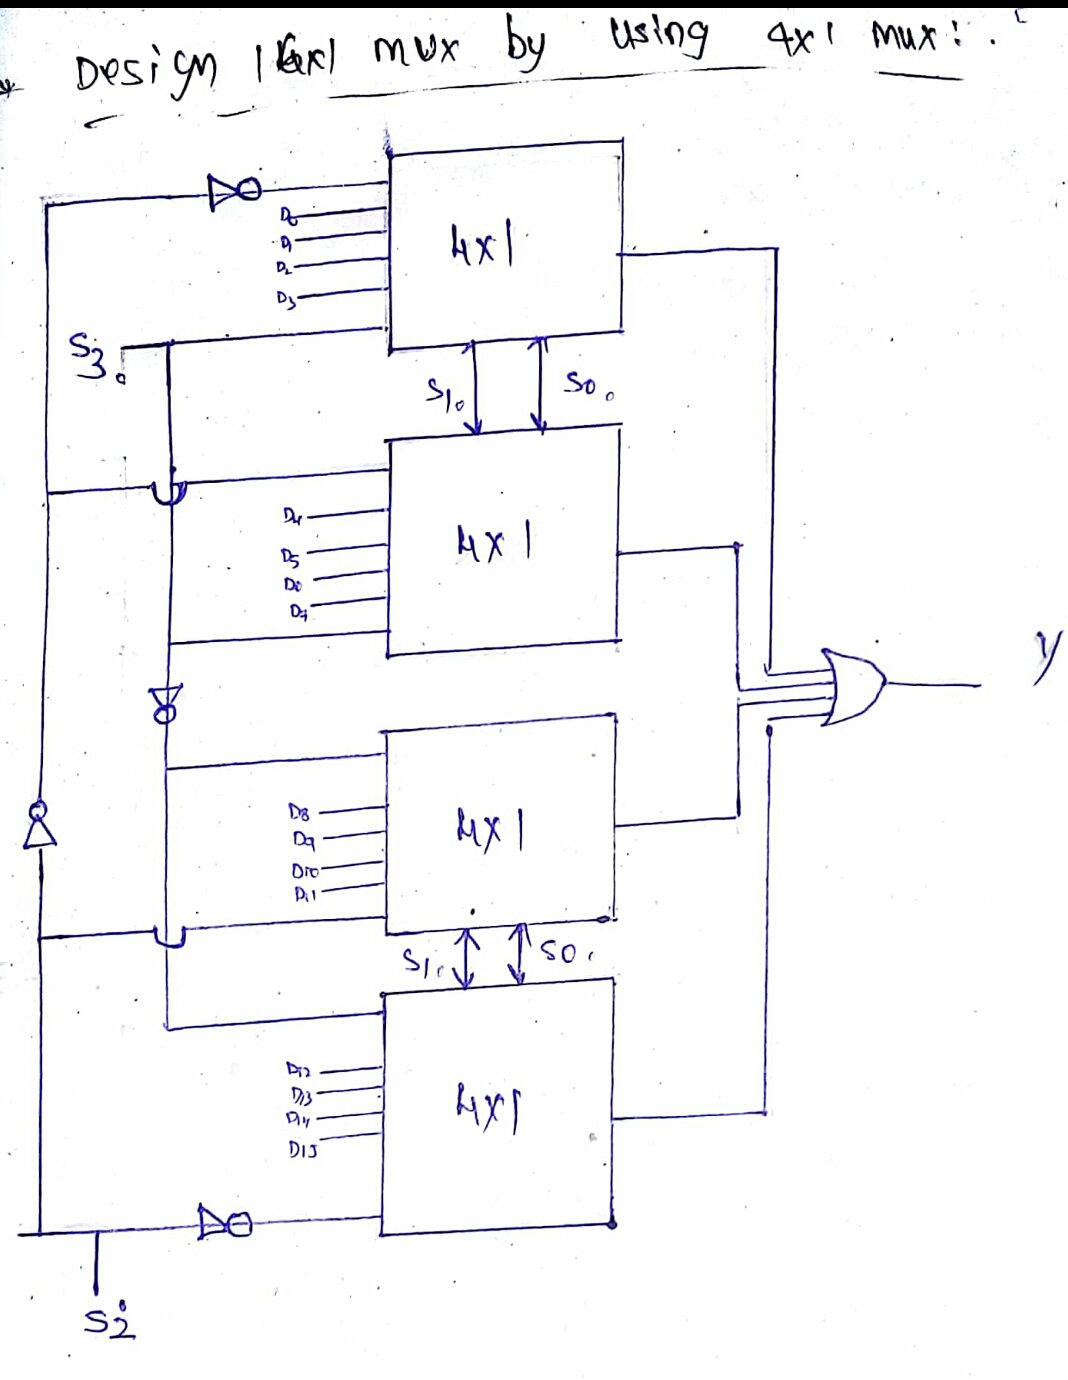 logic diagram of 8 to 1 line multiplexer half switched outlet wiring digital block 16 mux using four 4